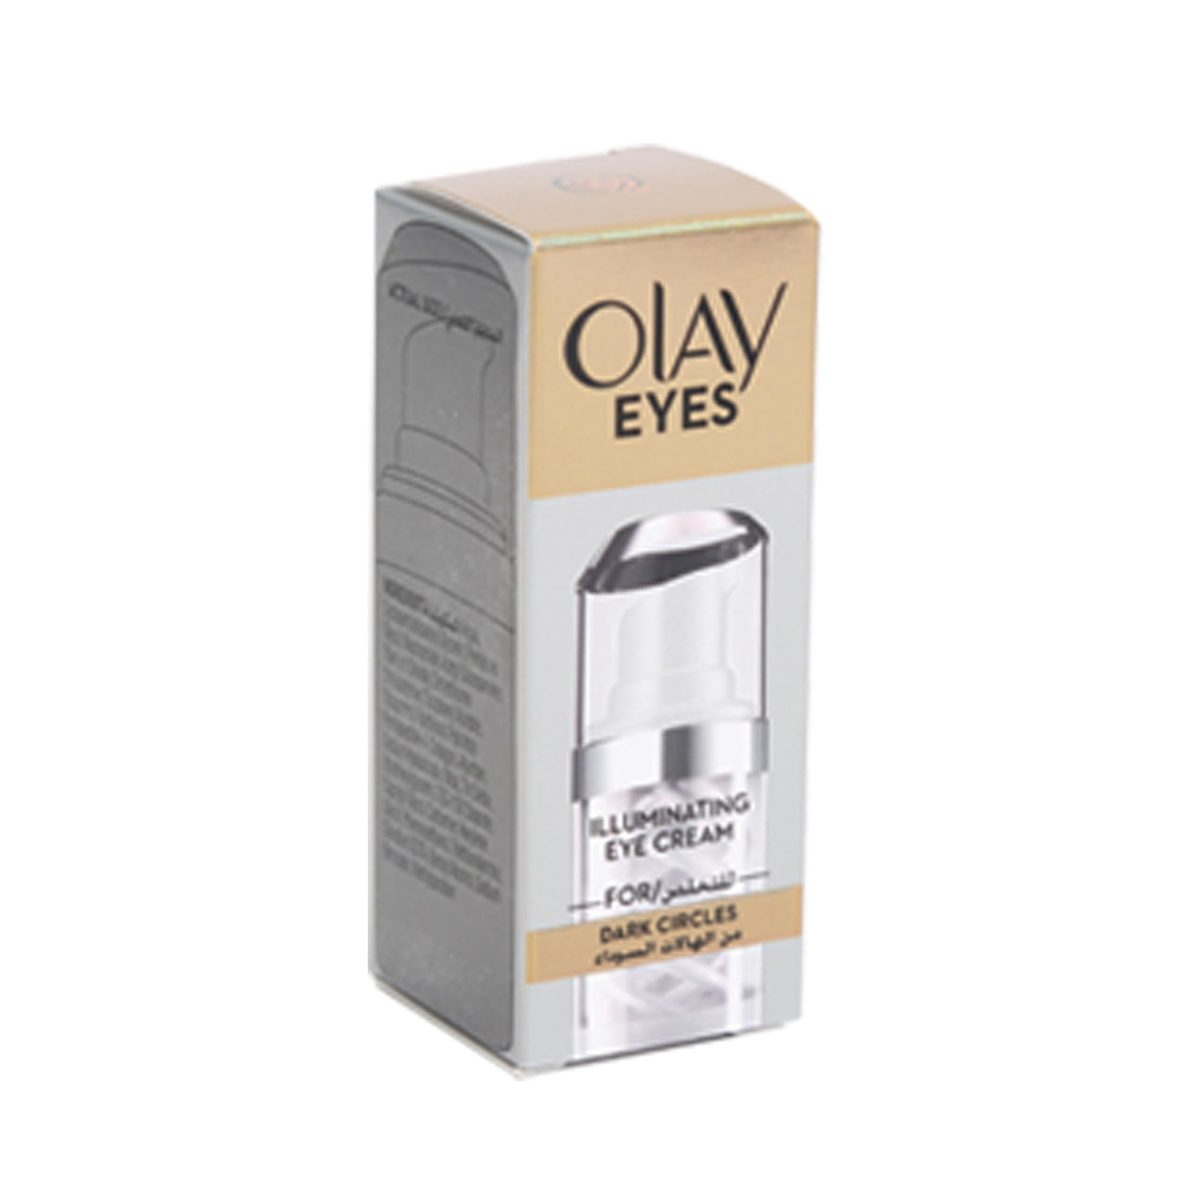 Buy Olay Eyes Illuminating Eye Cream 15ml Online Lulu